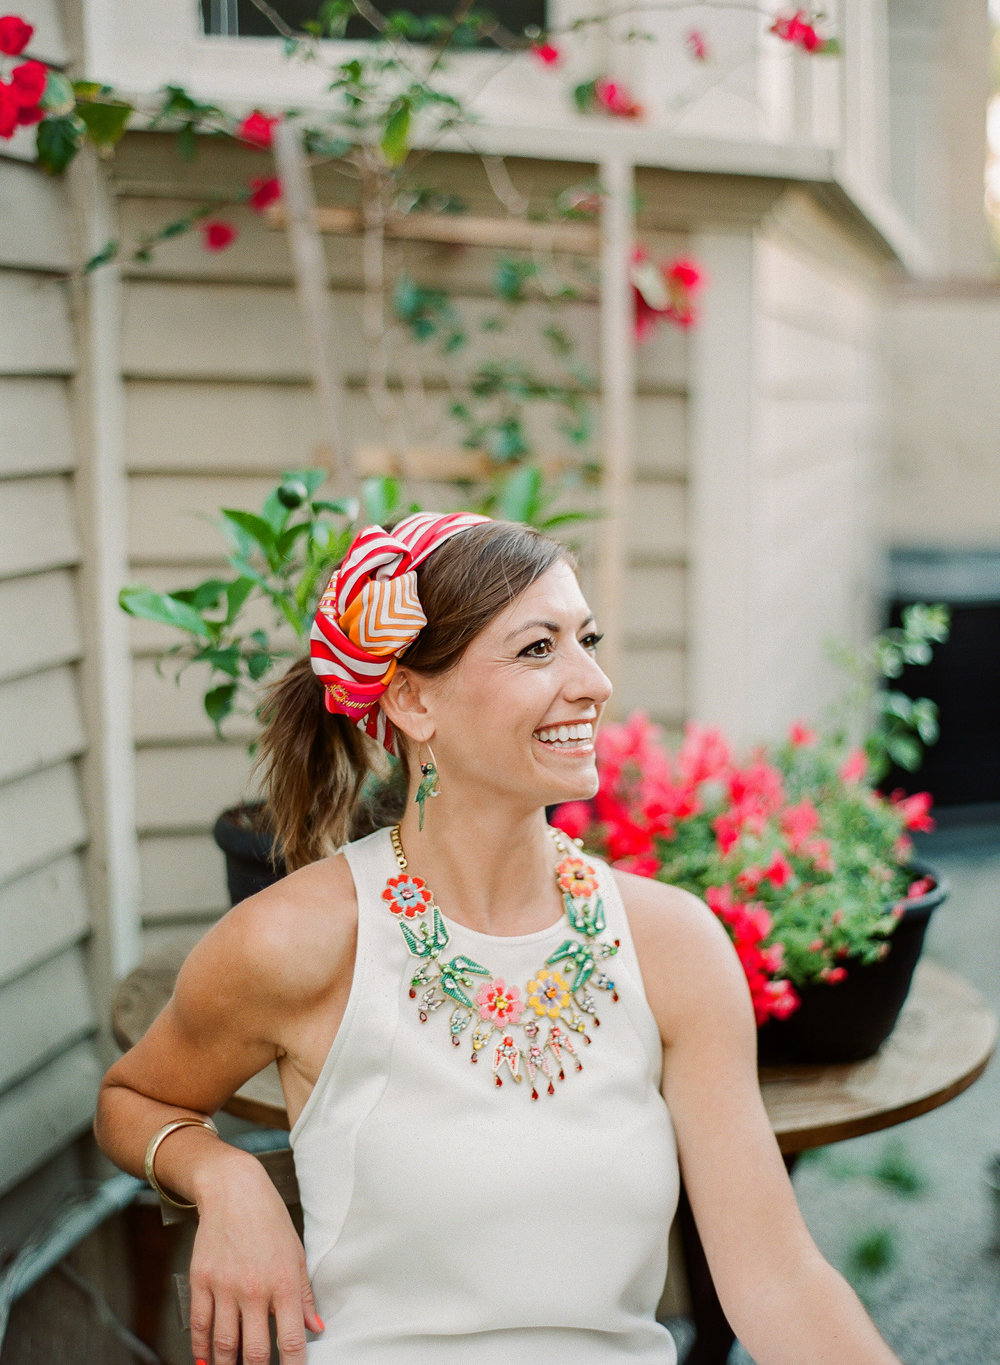 Charleston Porch Party, Events by Reagan, Dinner party, Tropical party, Charleston Event Planner